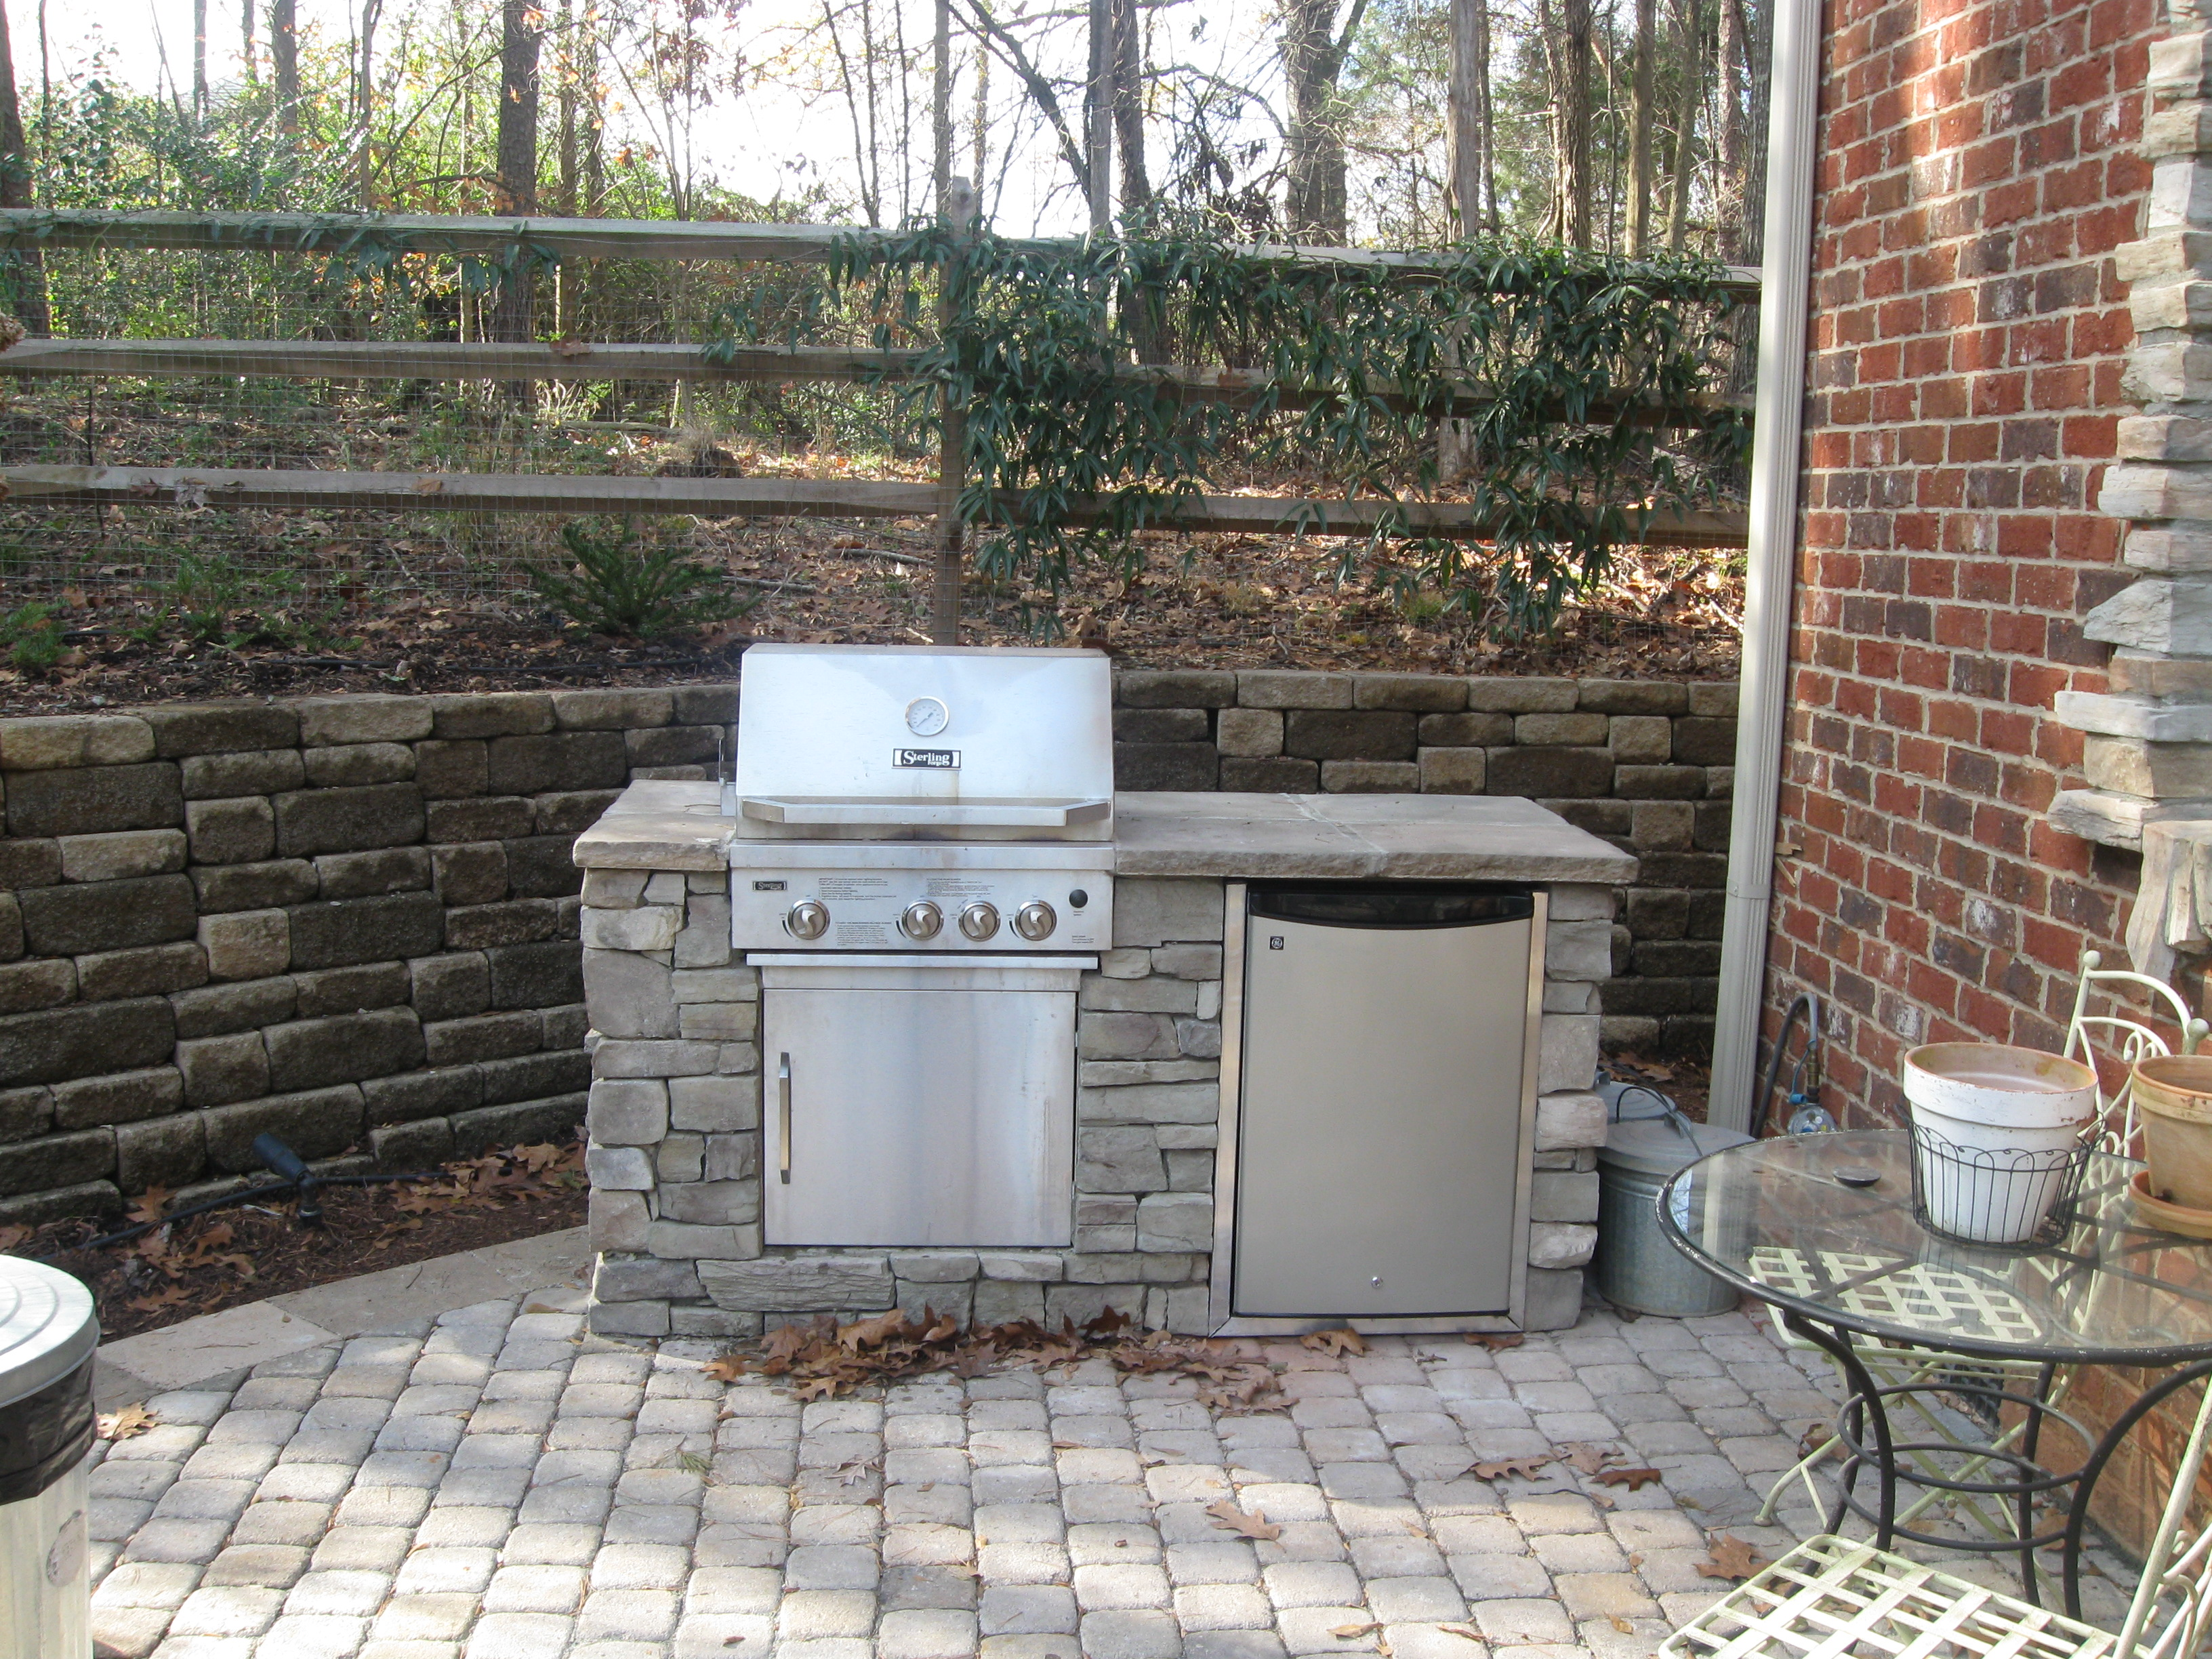 drop in grills for outdoor kitchens single bowl kitchen sinks do i need a special grill or my charlotte on stone paver patio